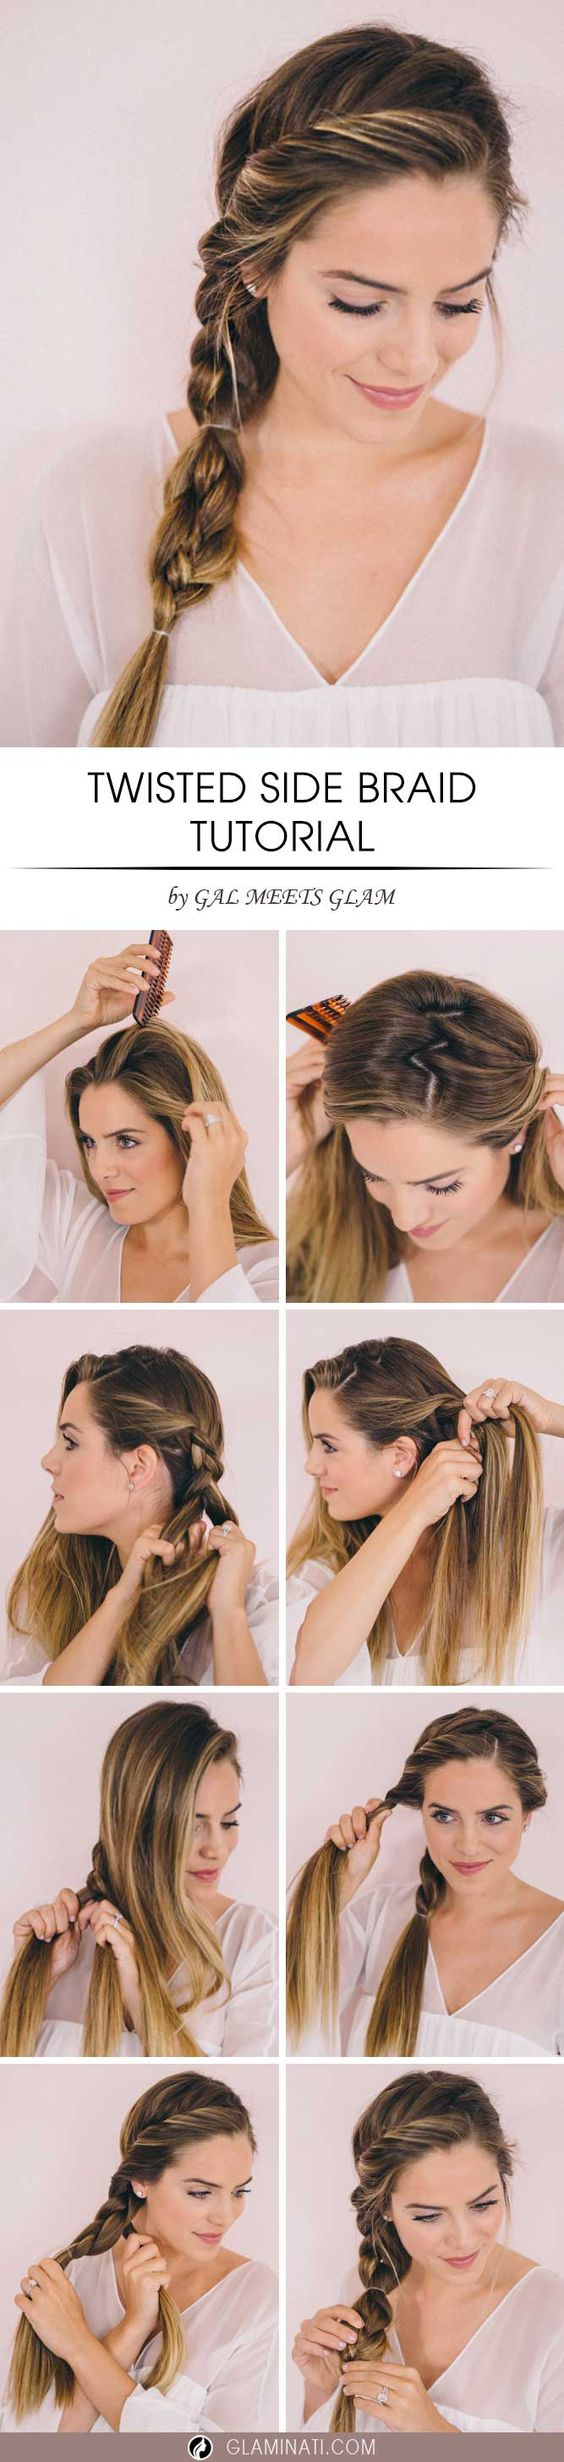 Easy Step By Step Hairstyle Tutorials You Can Do For Less Than 5 Minutes